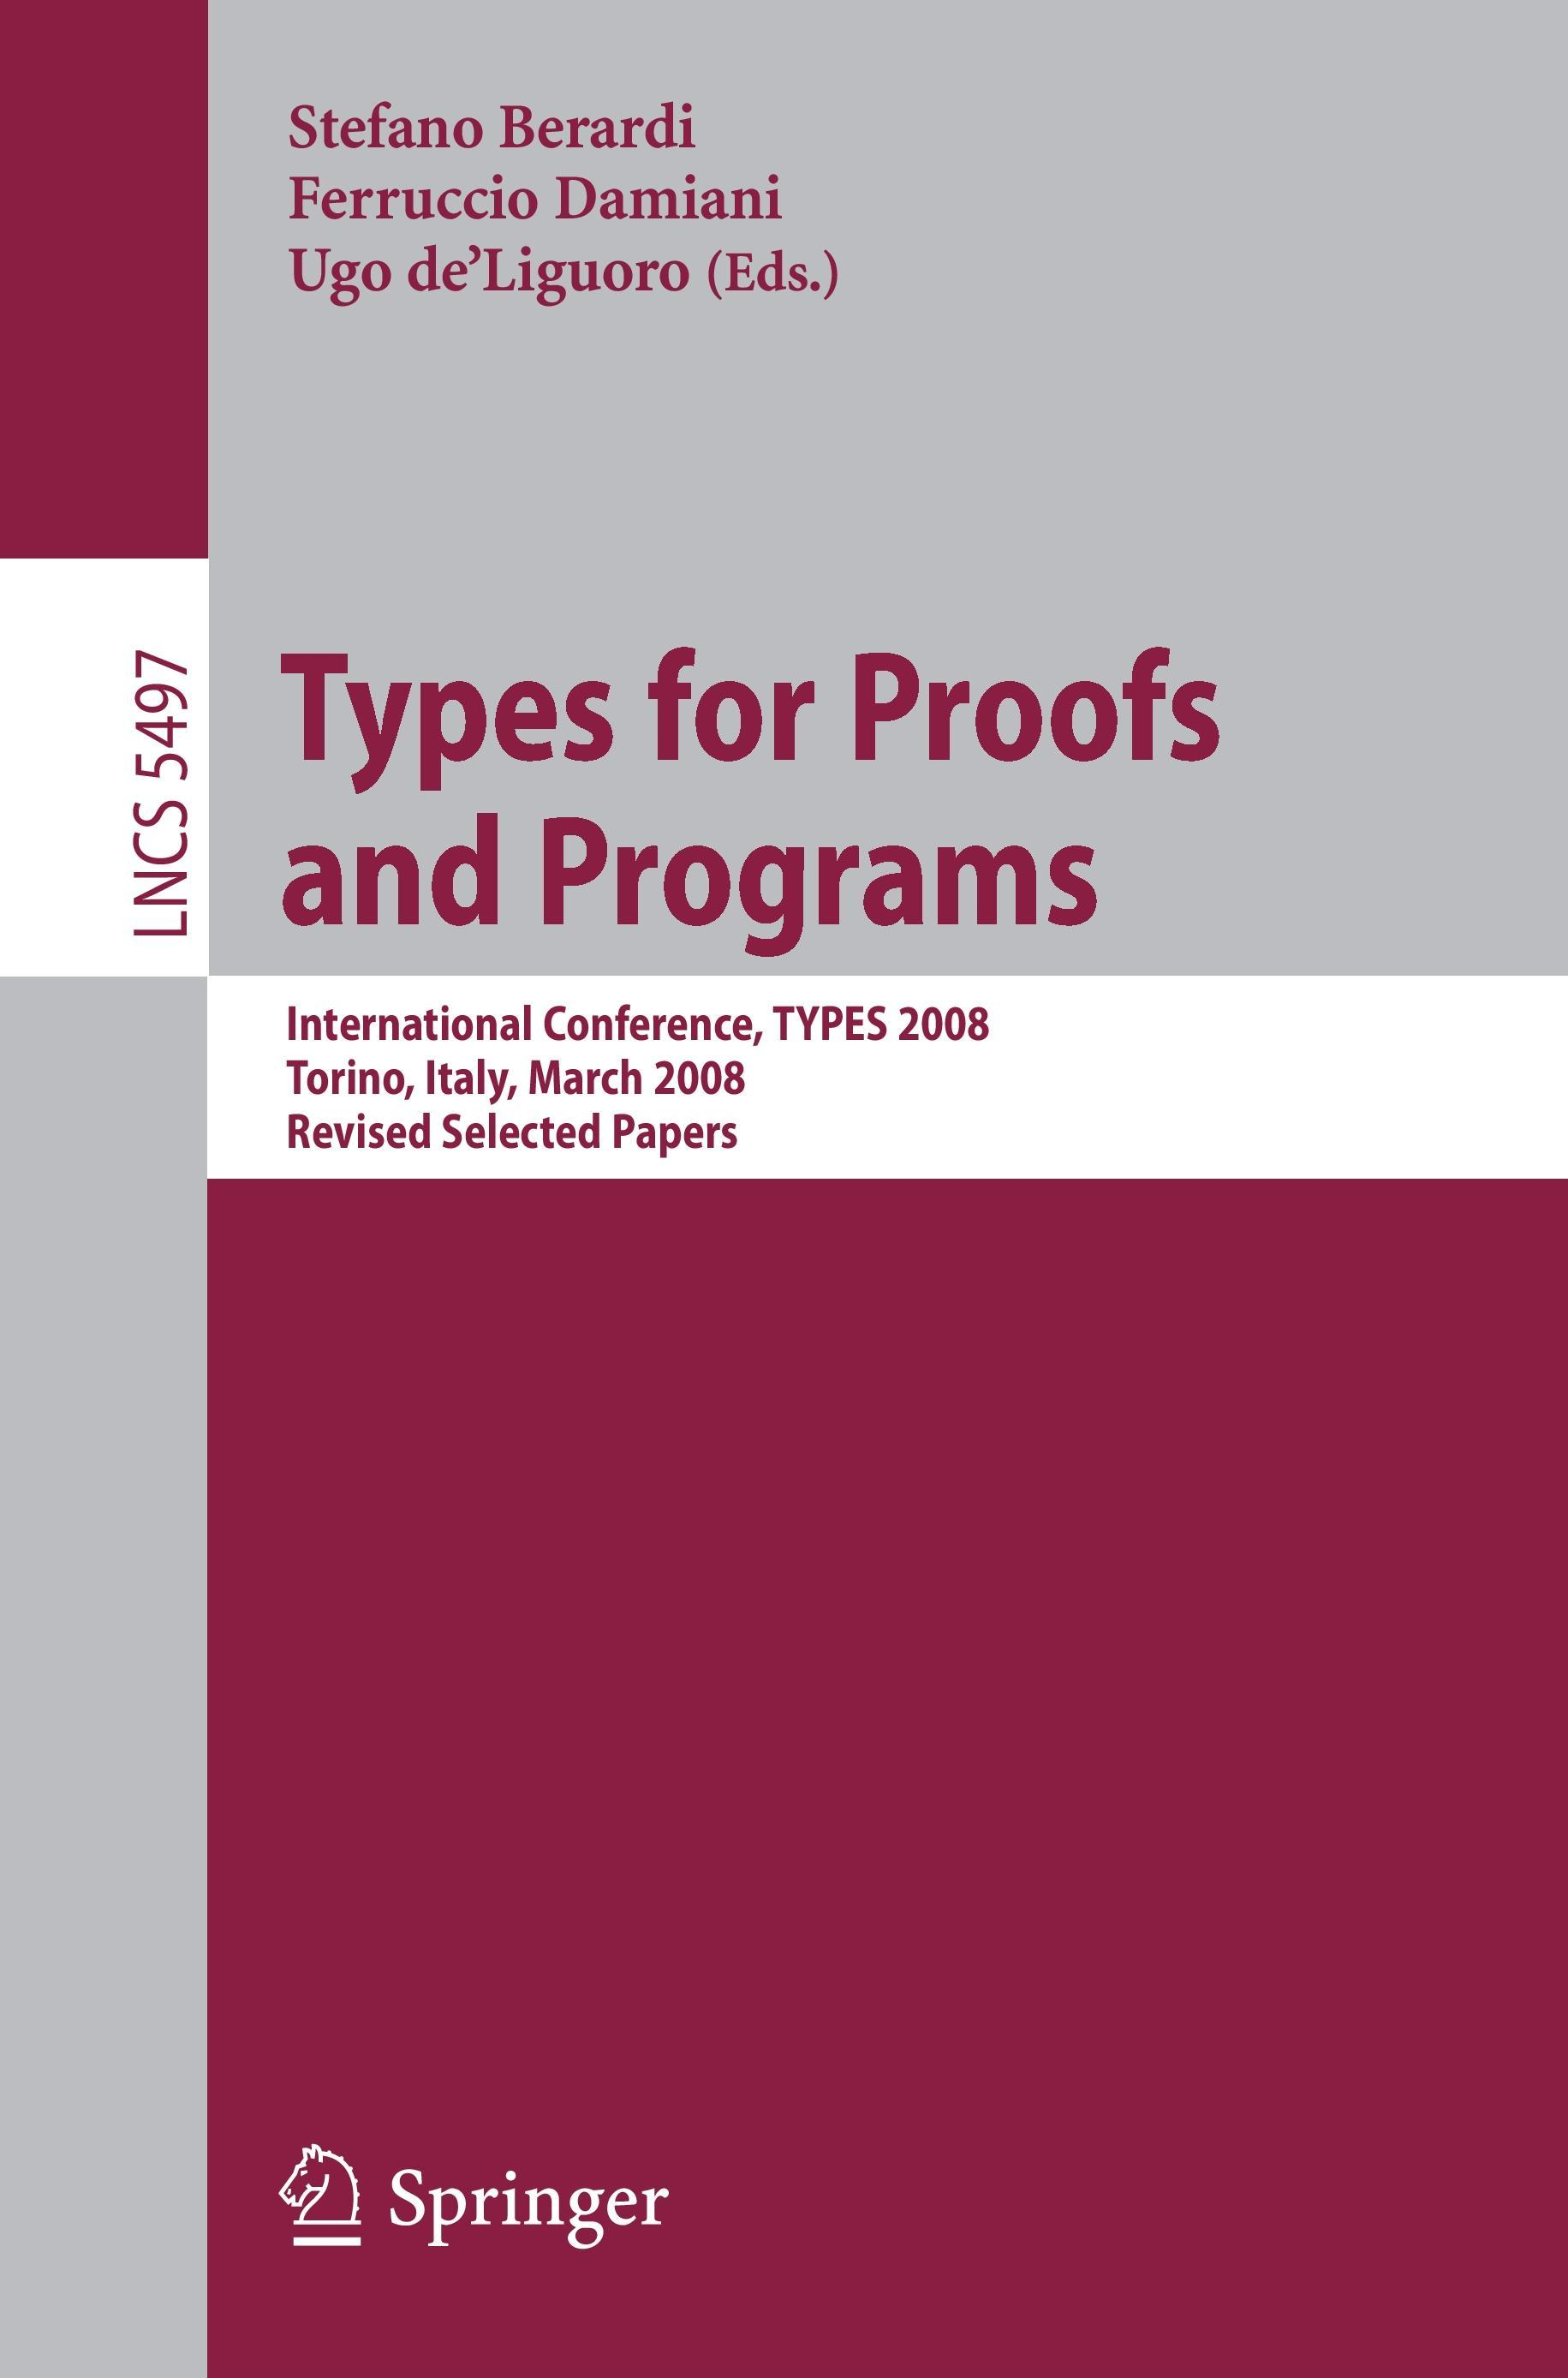 Types for Proofs and Programs, Stefano Berardi